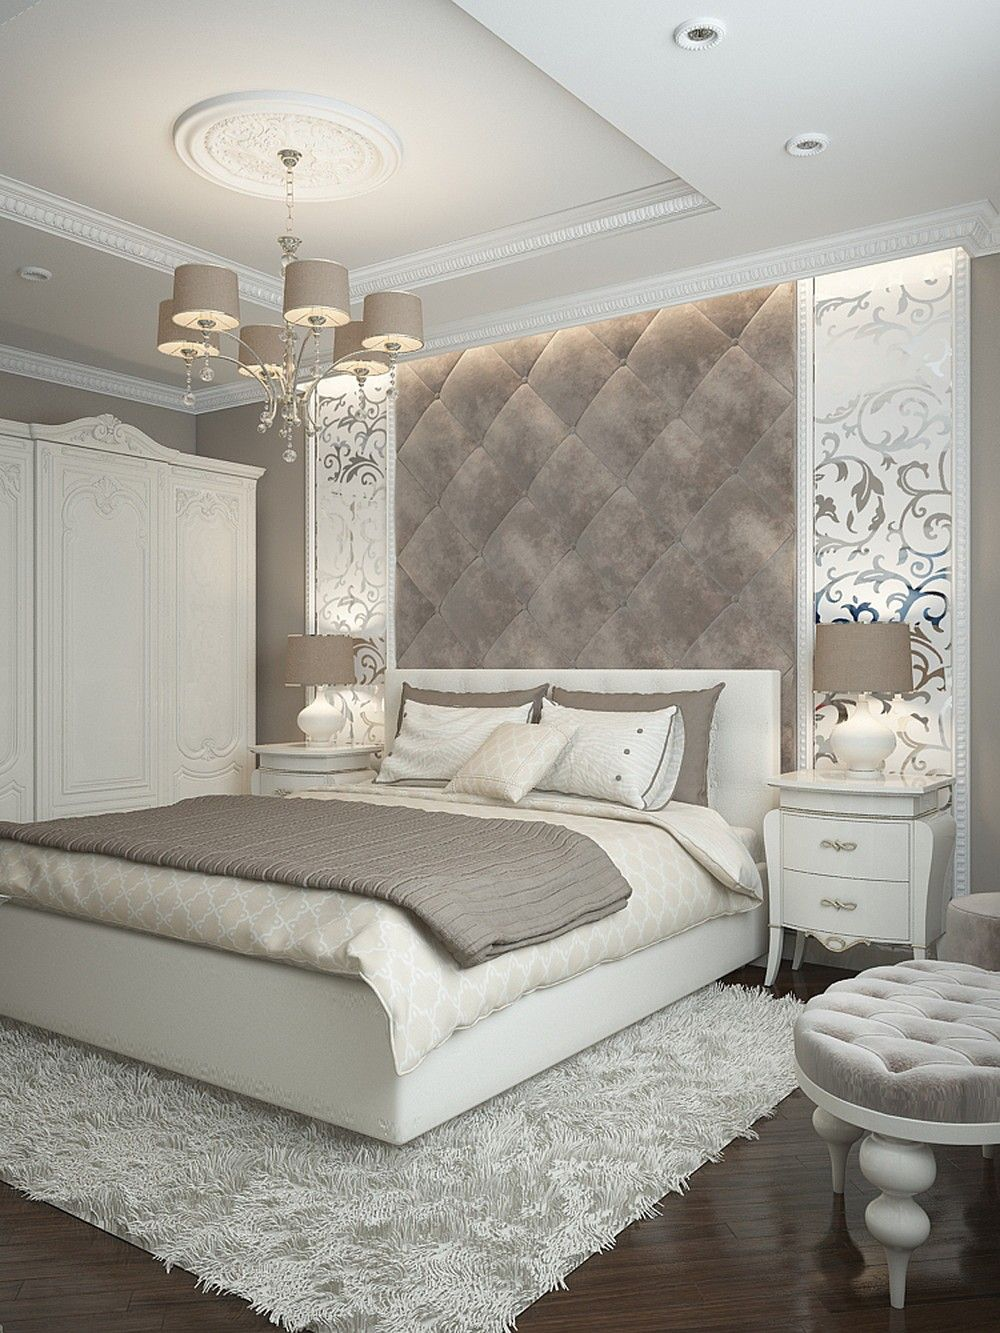 Large master bedroom decor ideas  Pin by jazzy Rafanan on Bedroom decor  Pinterest  Bedrooms Master